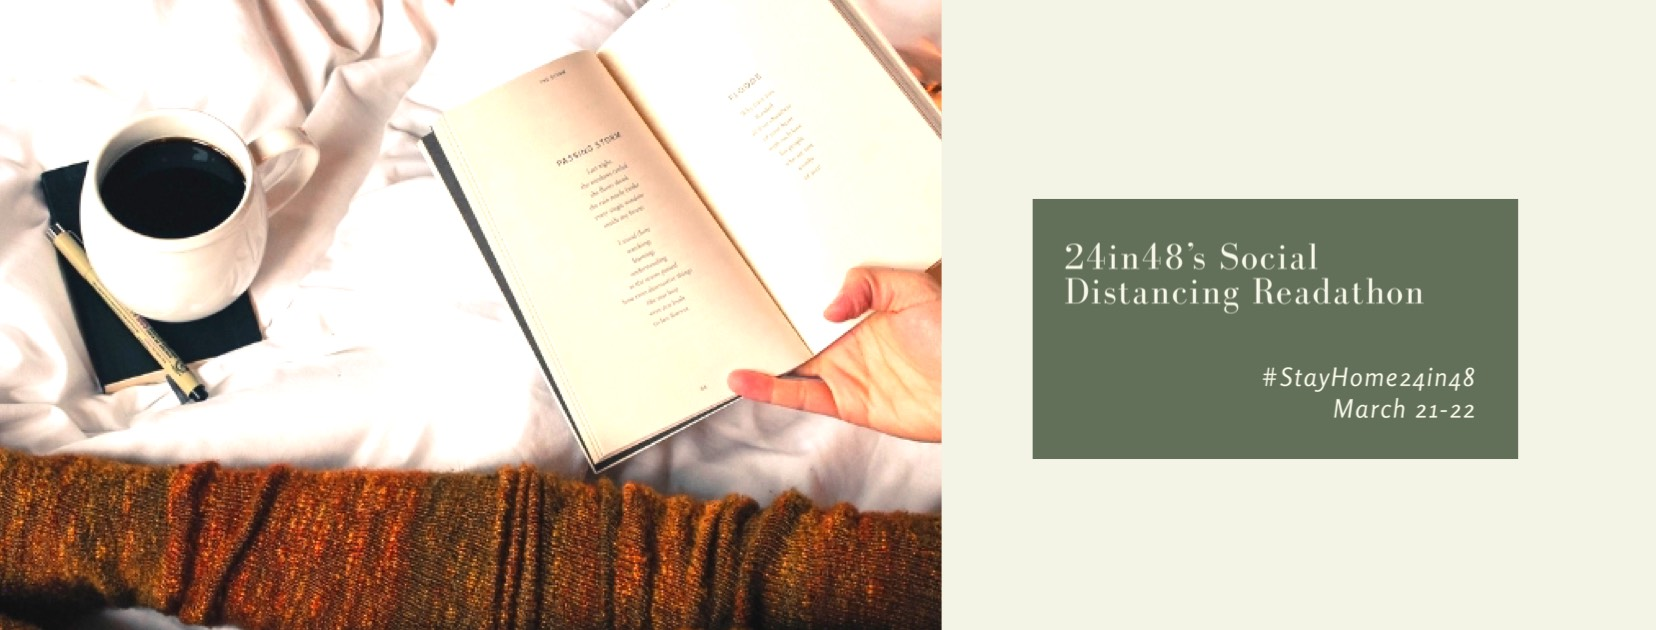 24in48 Readathon: Social Distancing Edition